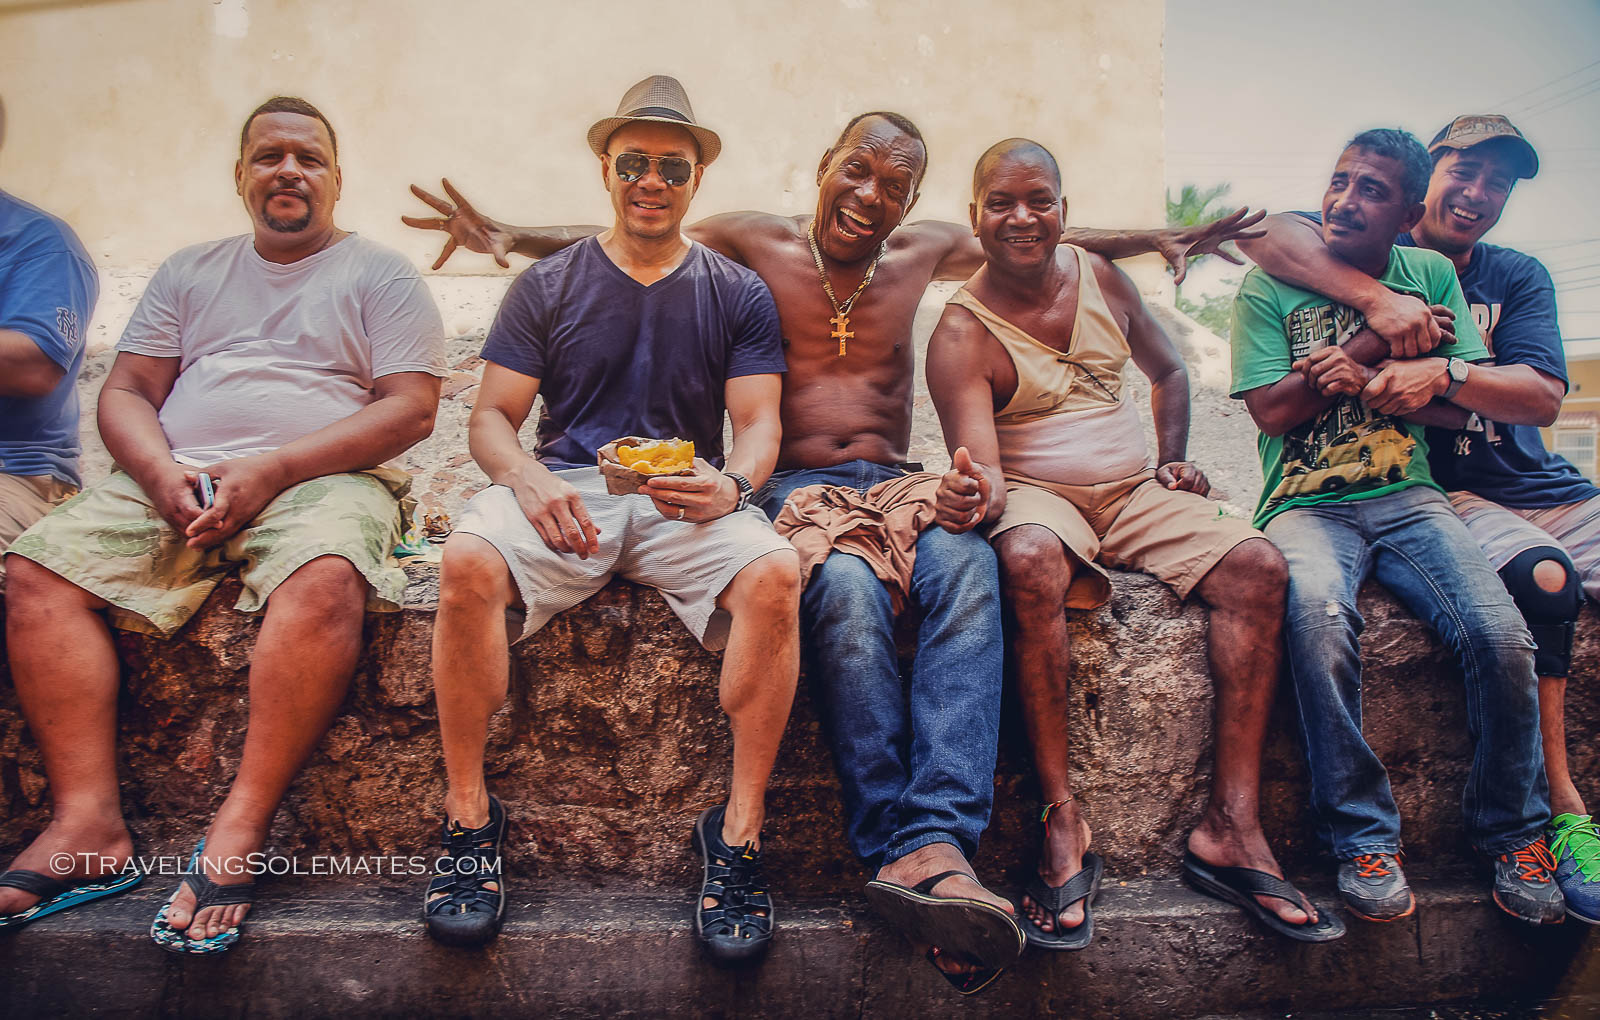 Friendly locals in Getsemani, Cartagena, Colombia